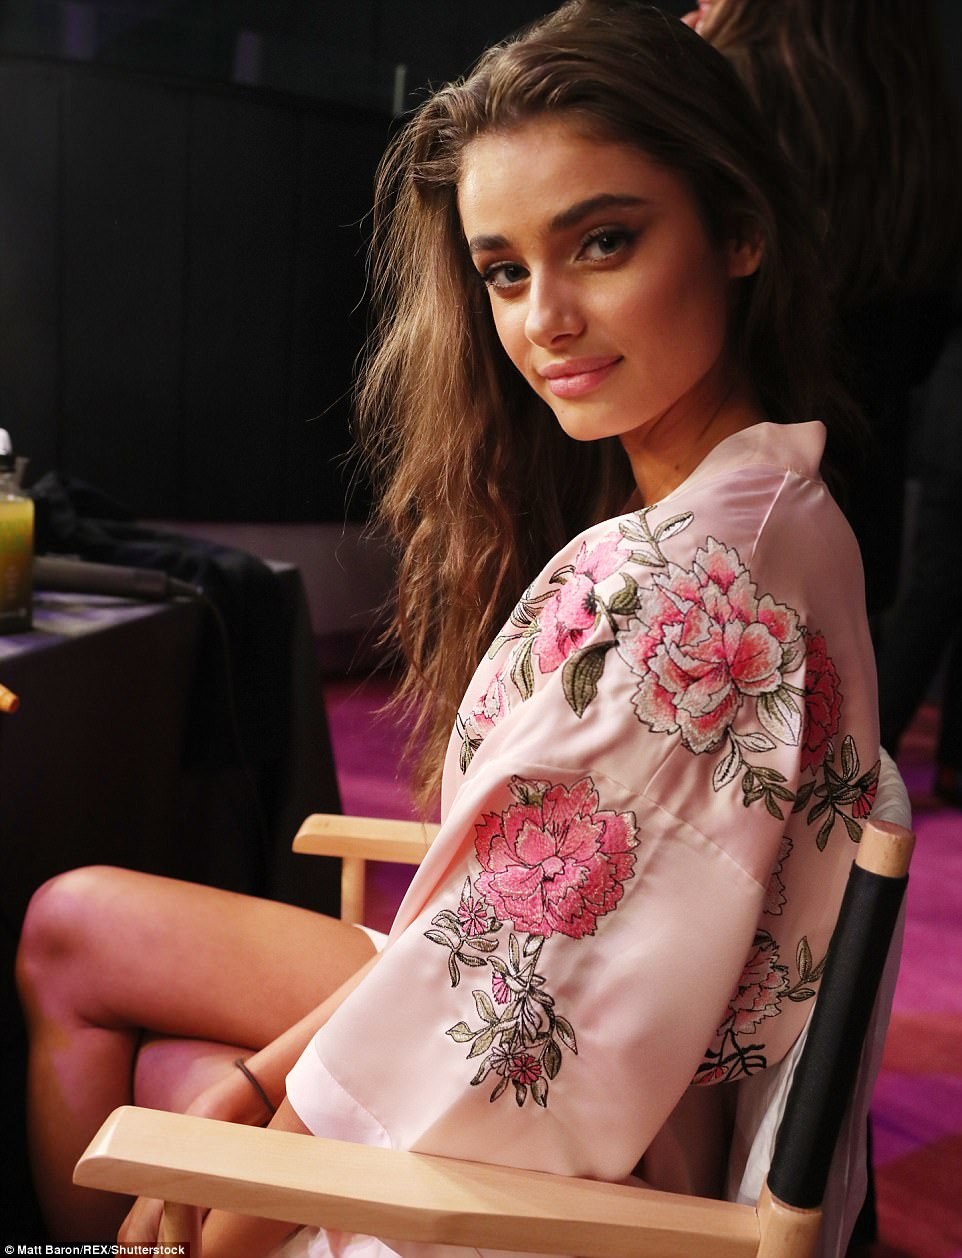 What a babe! Angel Taylor Hill was also spotted backstage at the show